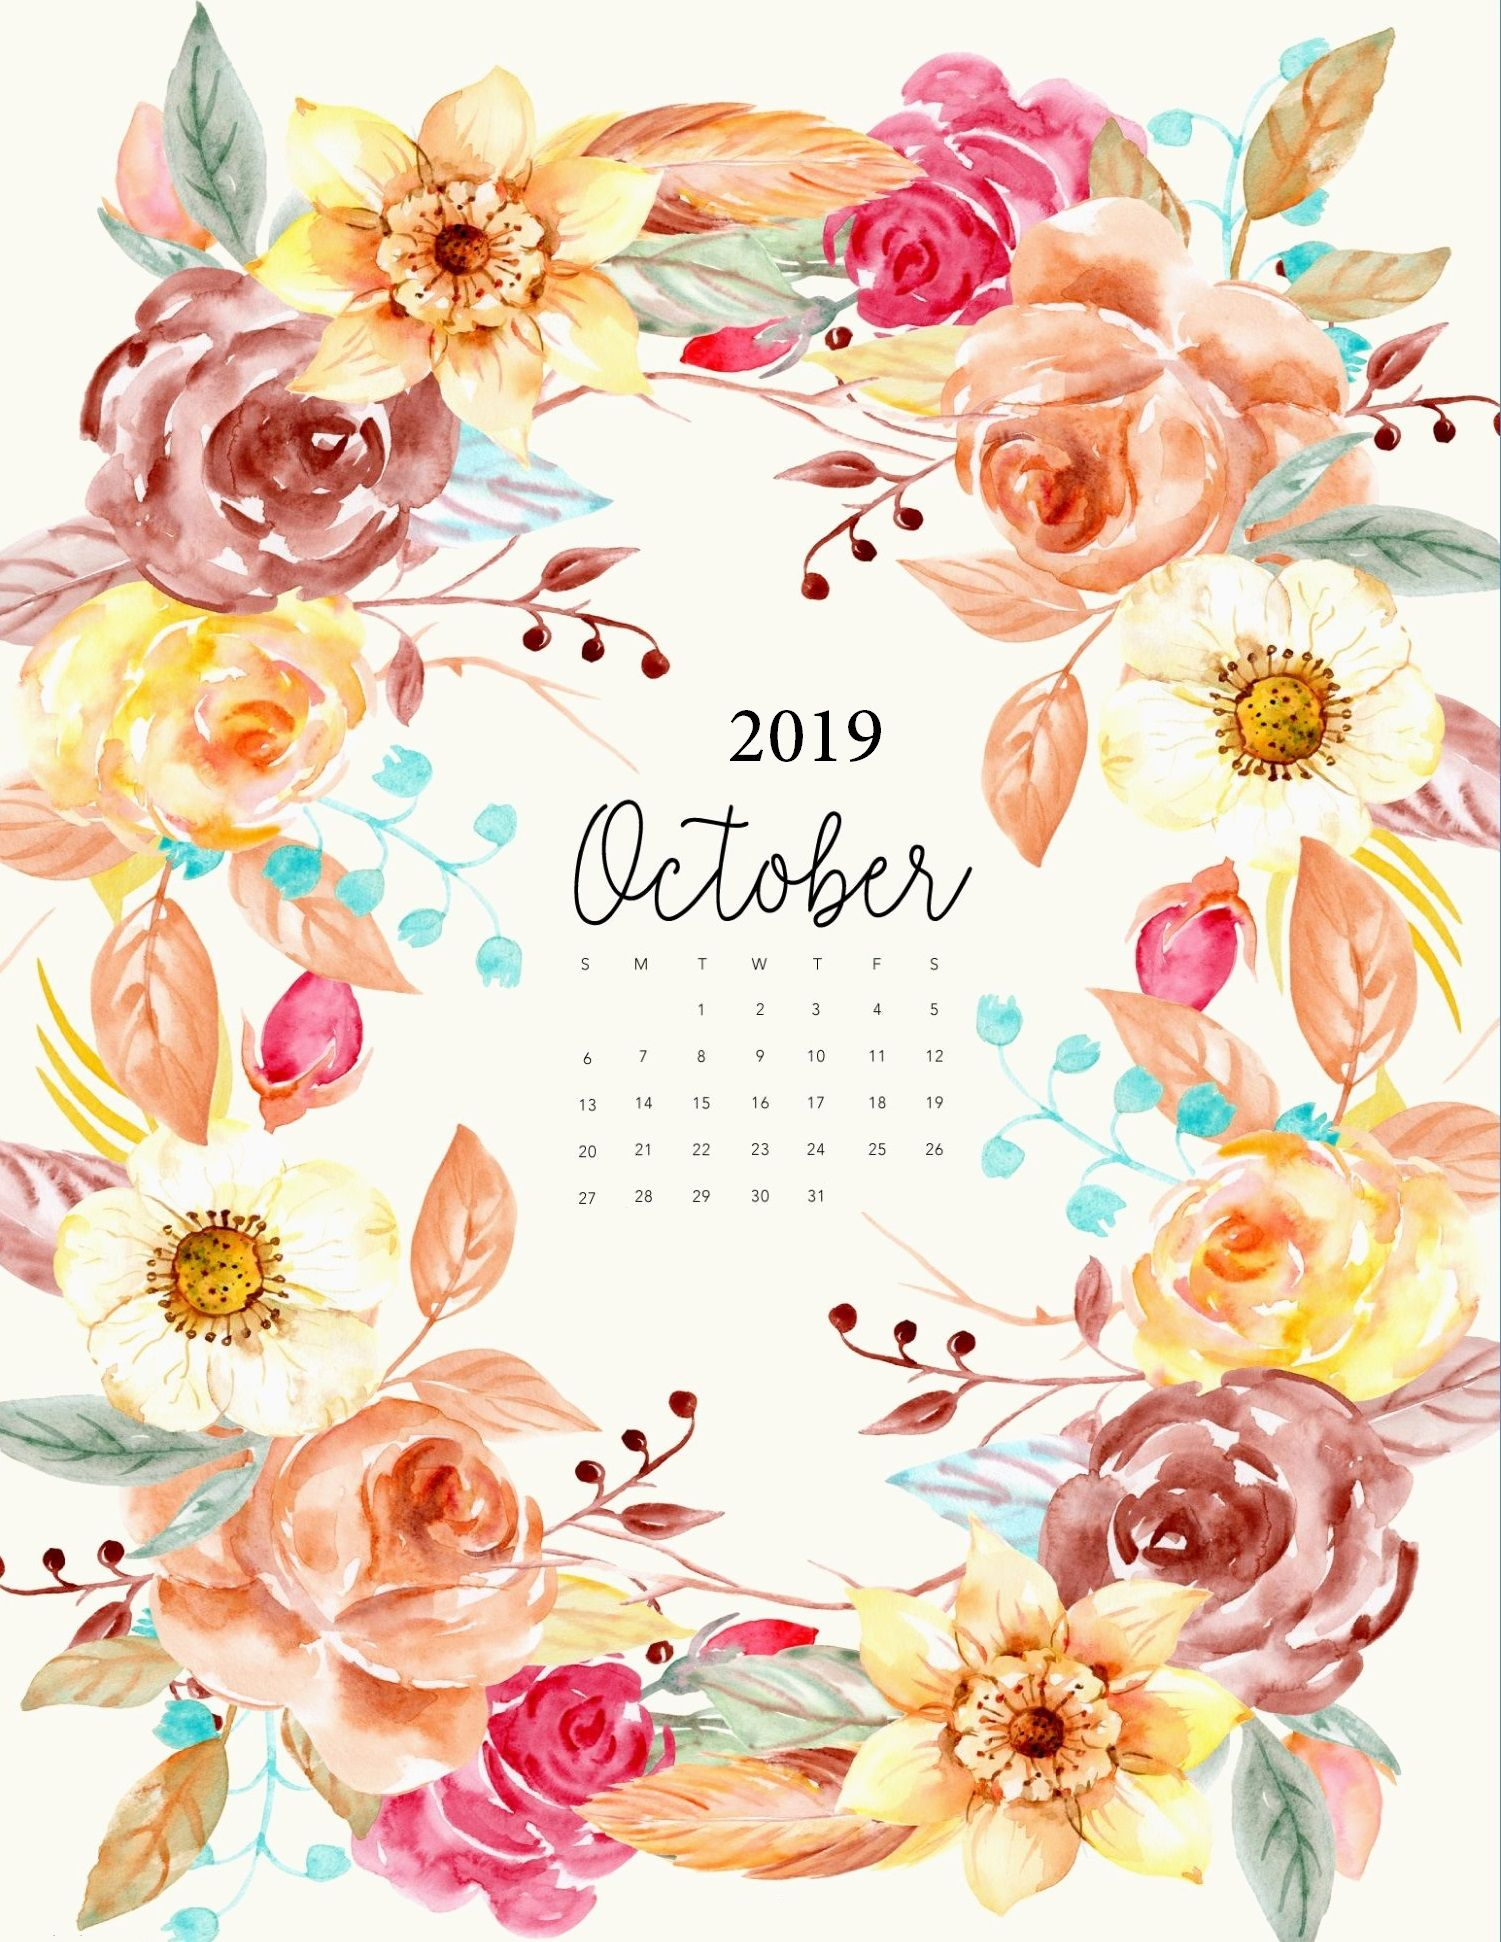 Best October 2019 iPhone Calendar Wallpaper #octoberwallpaperiphone